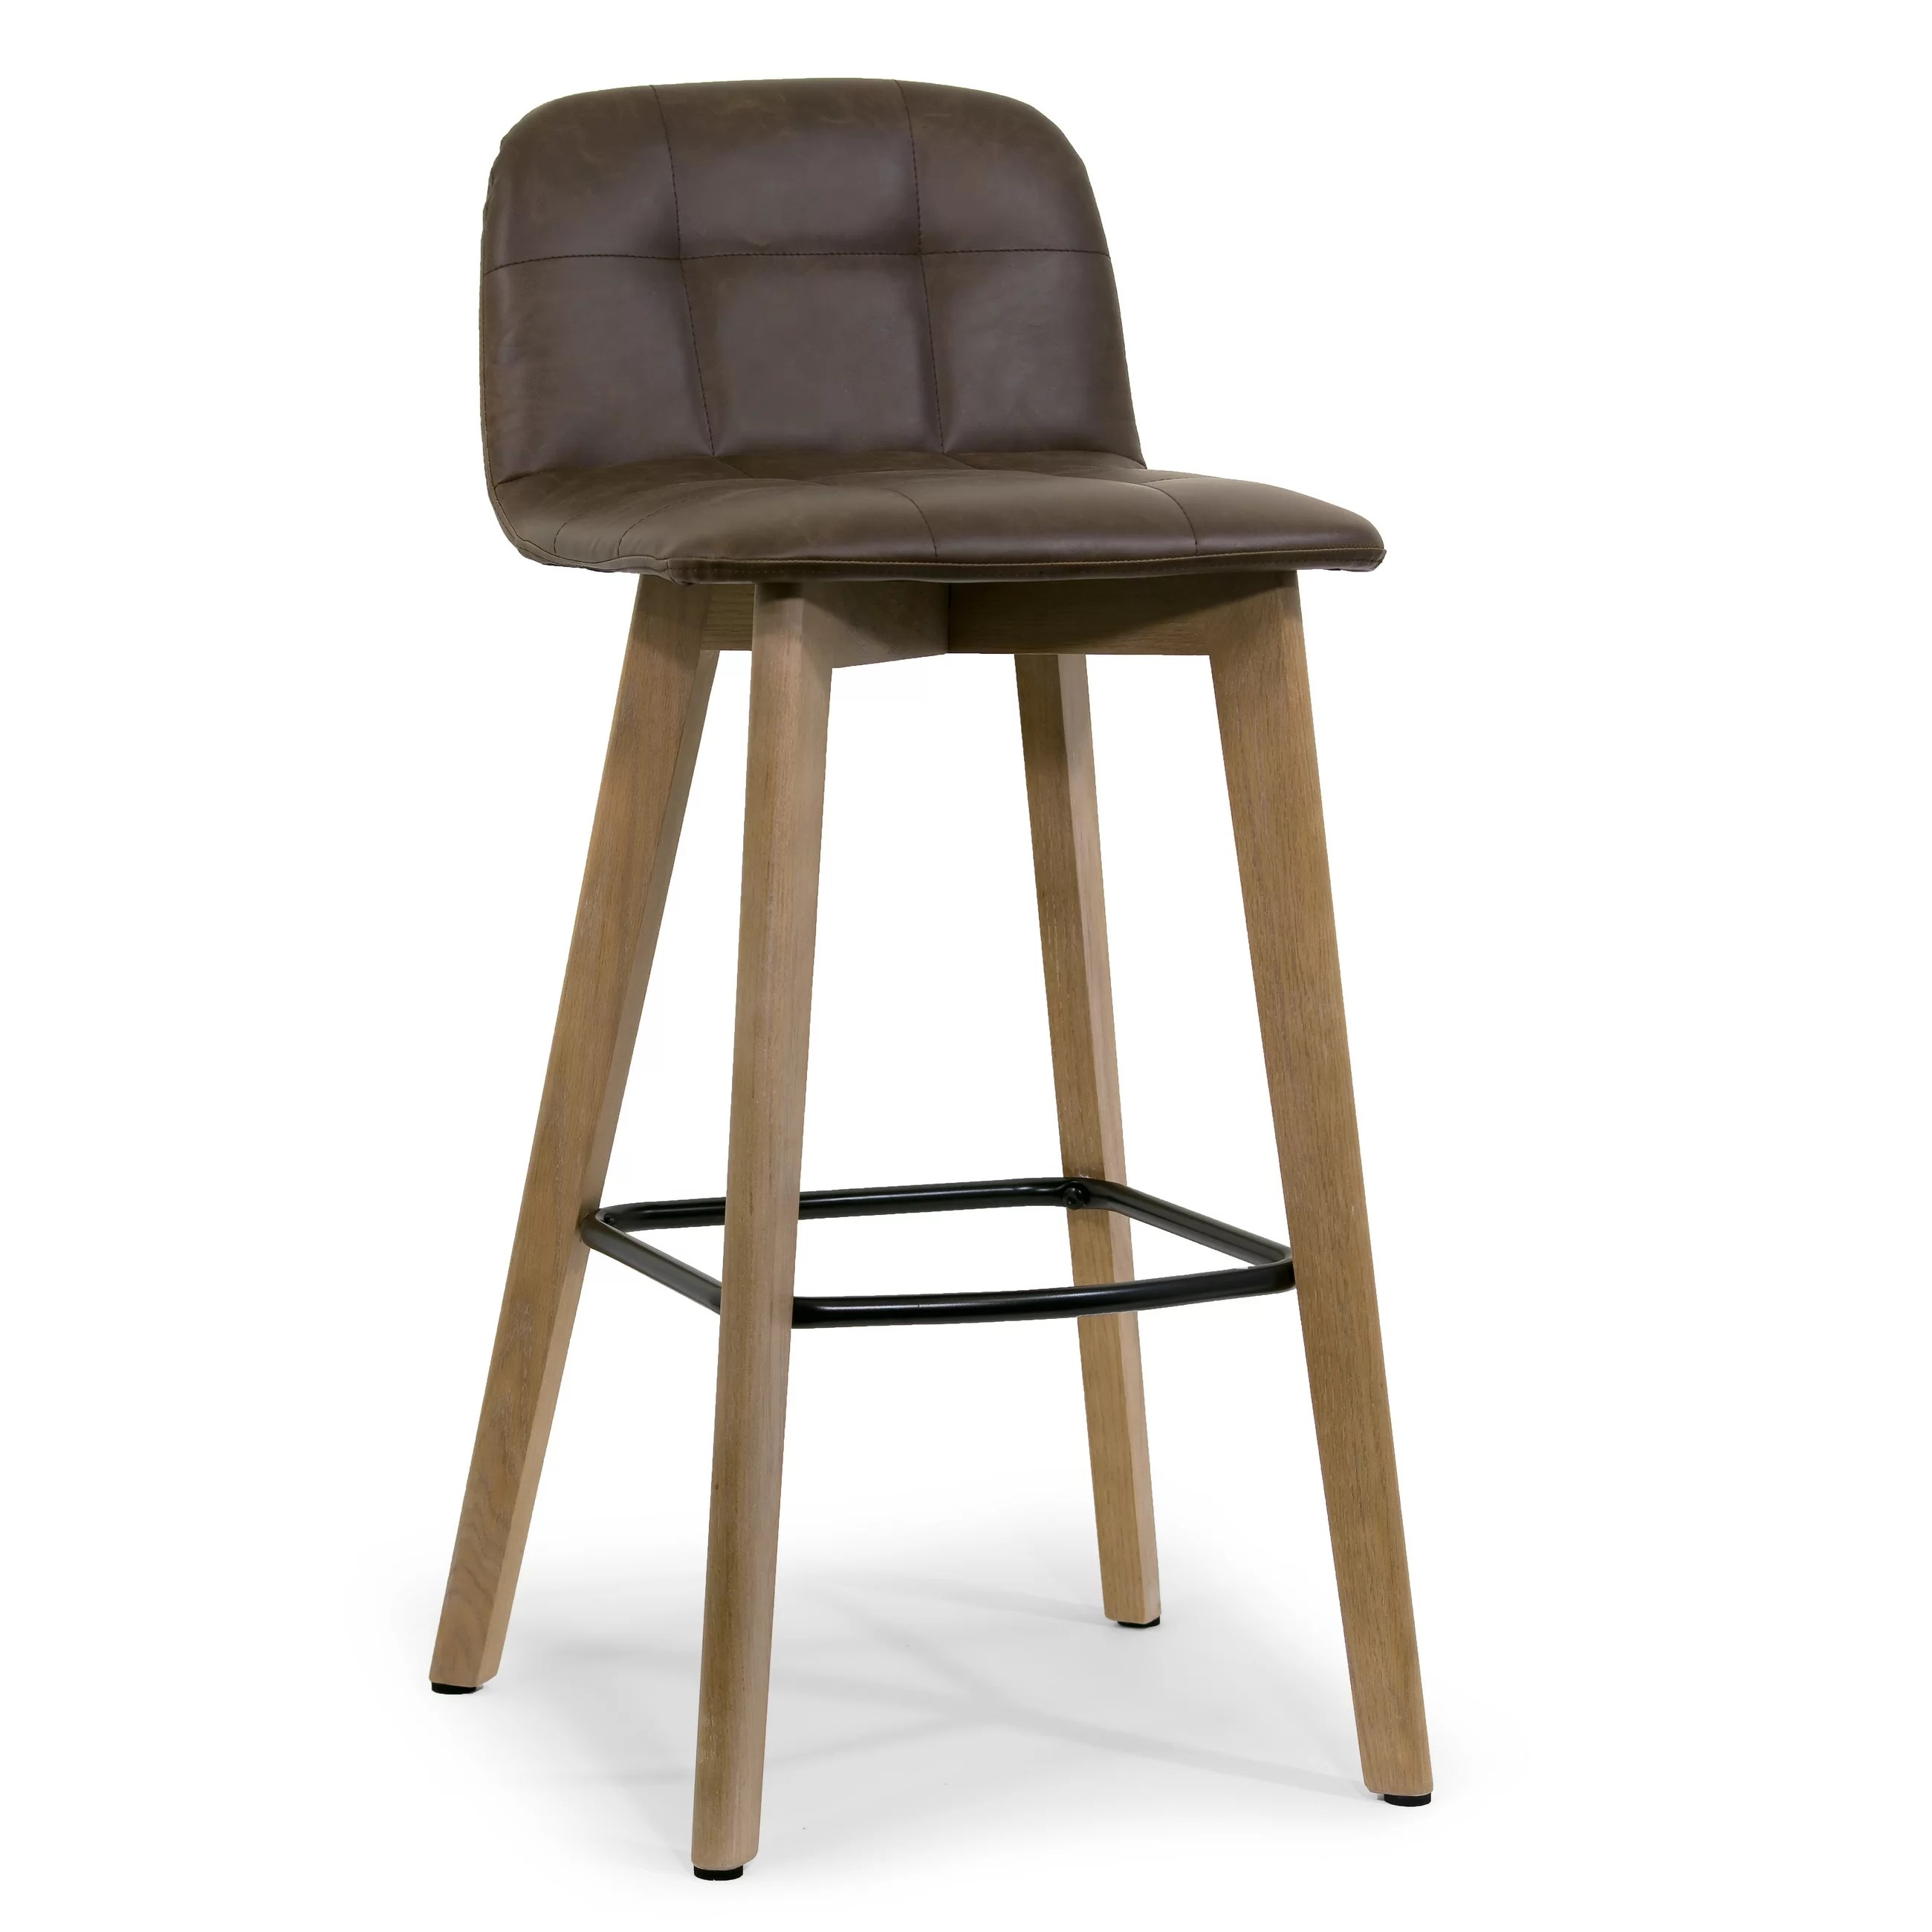 Bar And Stools For Home Glamour Home Decor 27 5 Quot Bar Stool And Reviews Wayfair Ca